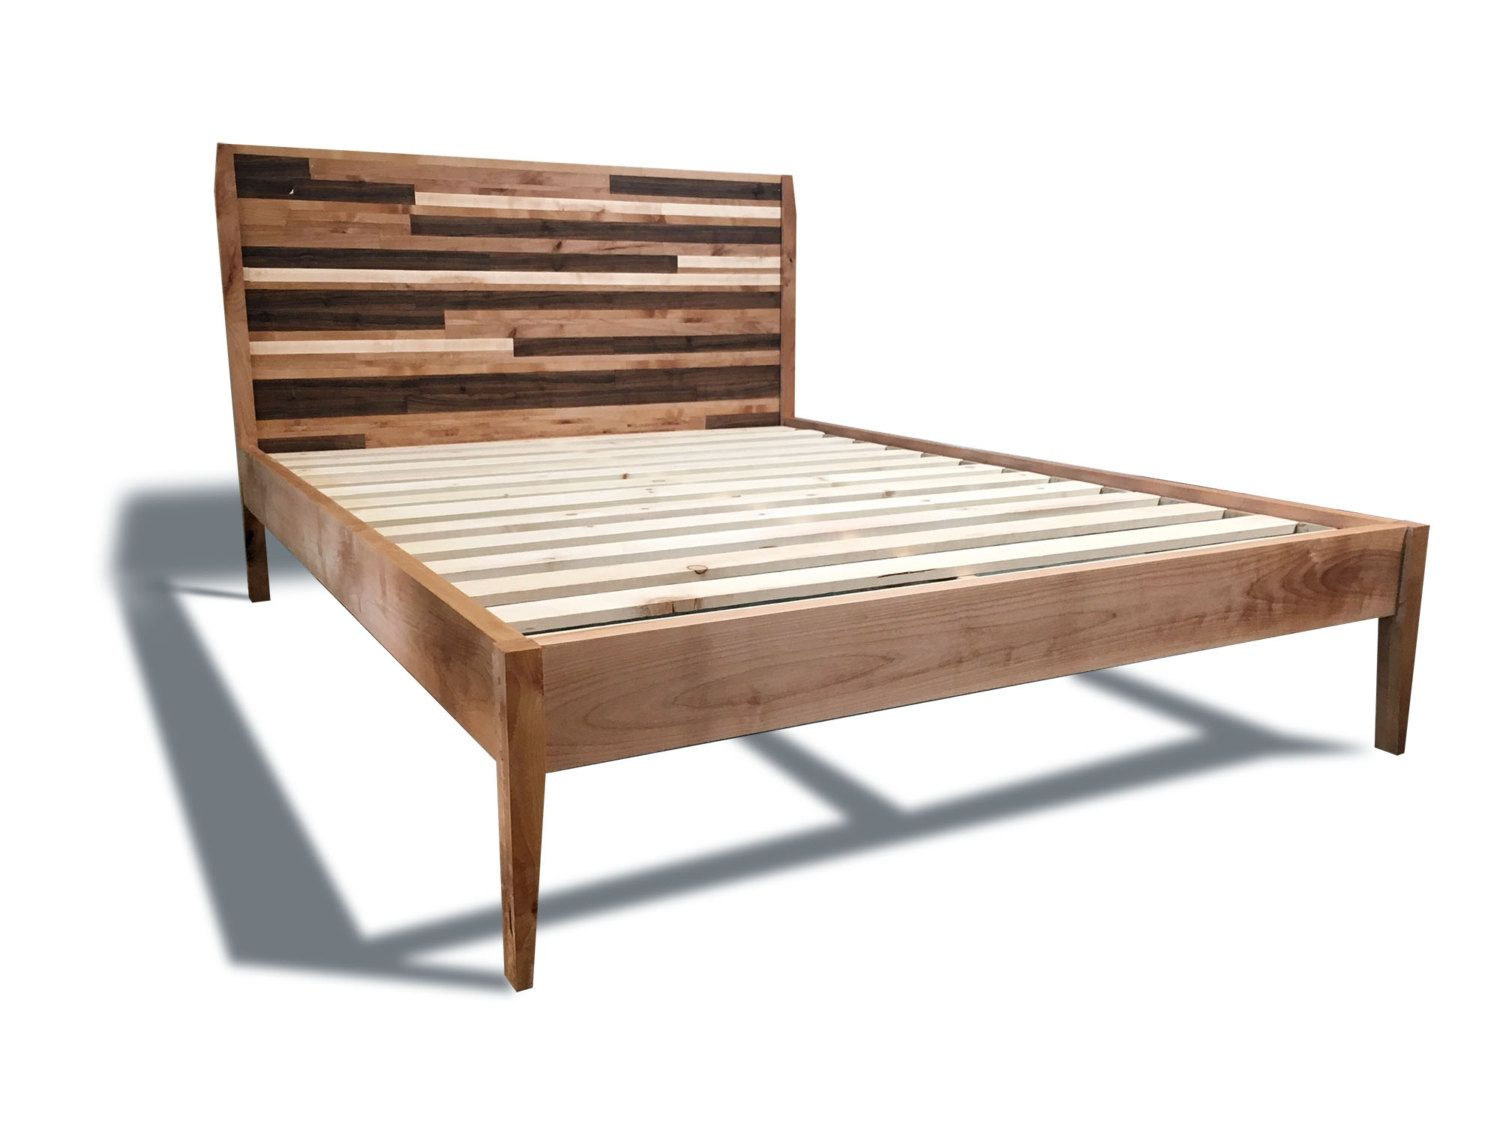 A Solid Wood Platform Bed Frame and Headboard Set with tapered